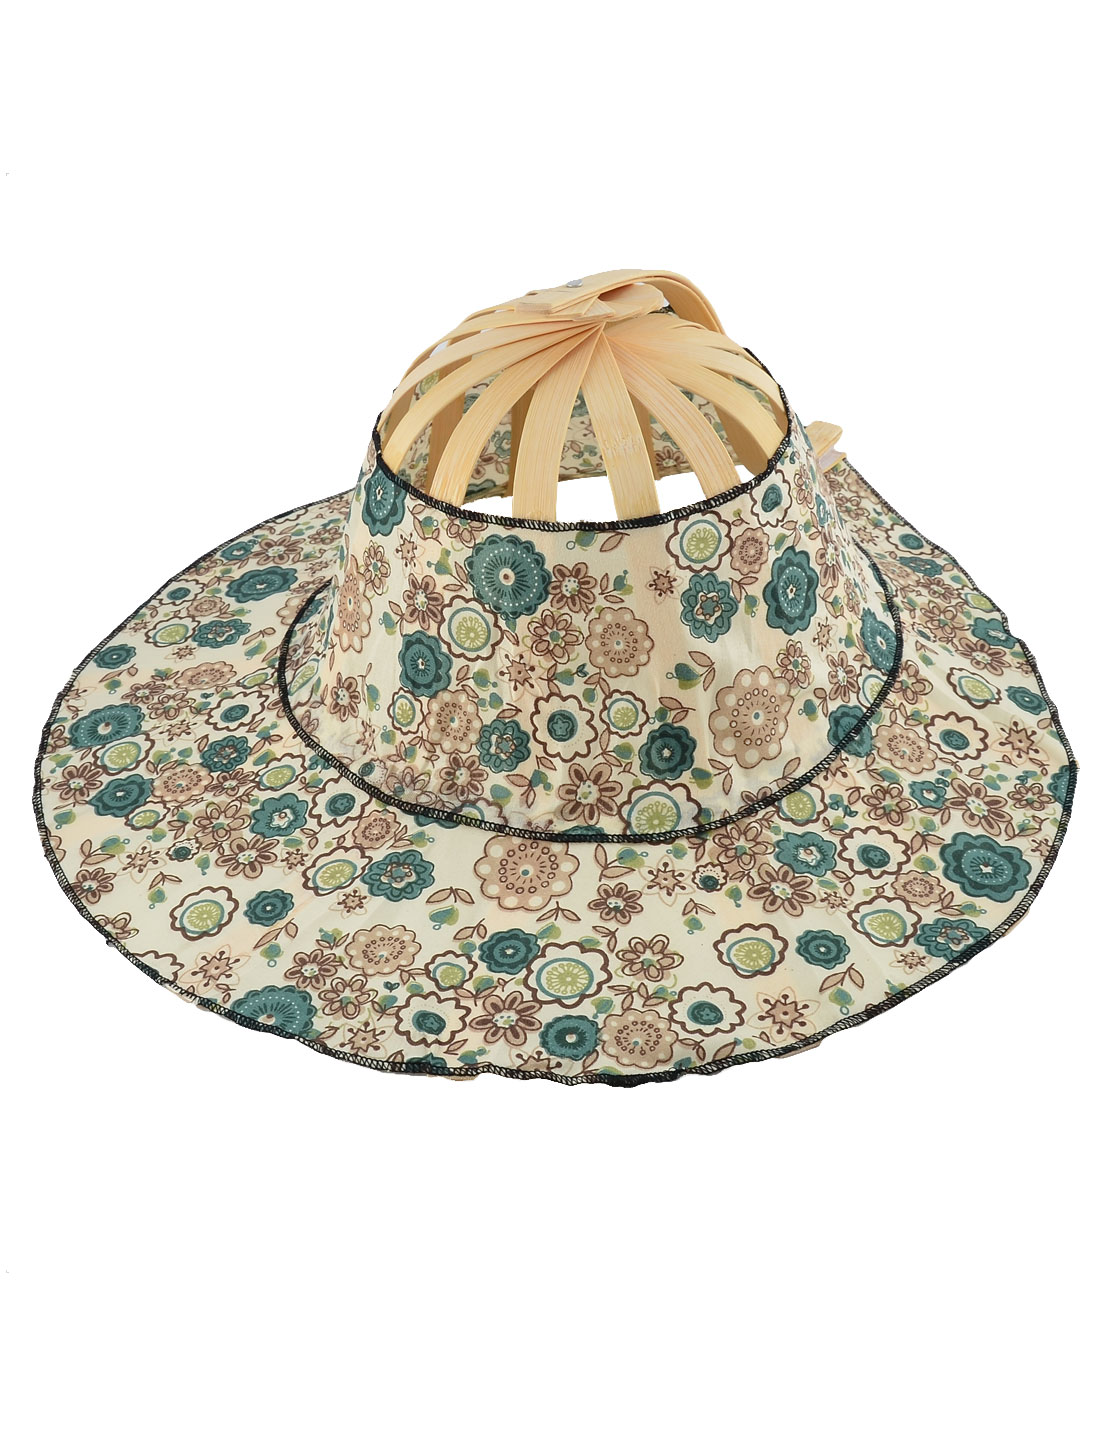 Wedding Party Women Bamboo Frame Floral Pattern Folding Hand Handheld Fan Hat Cap